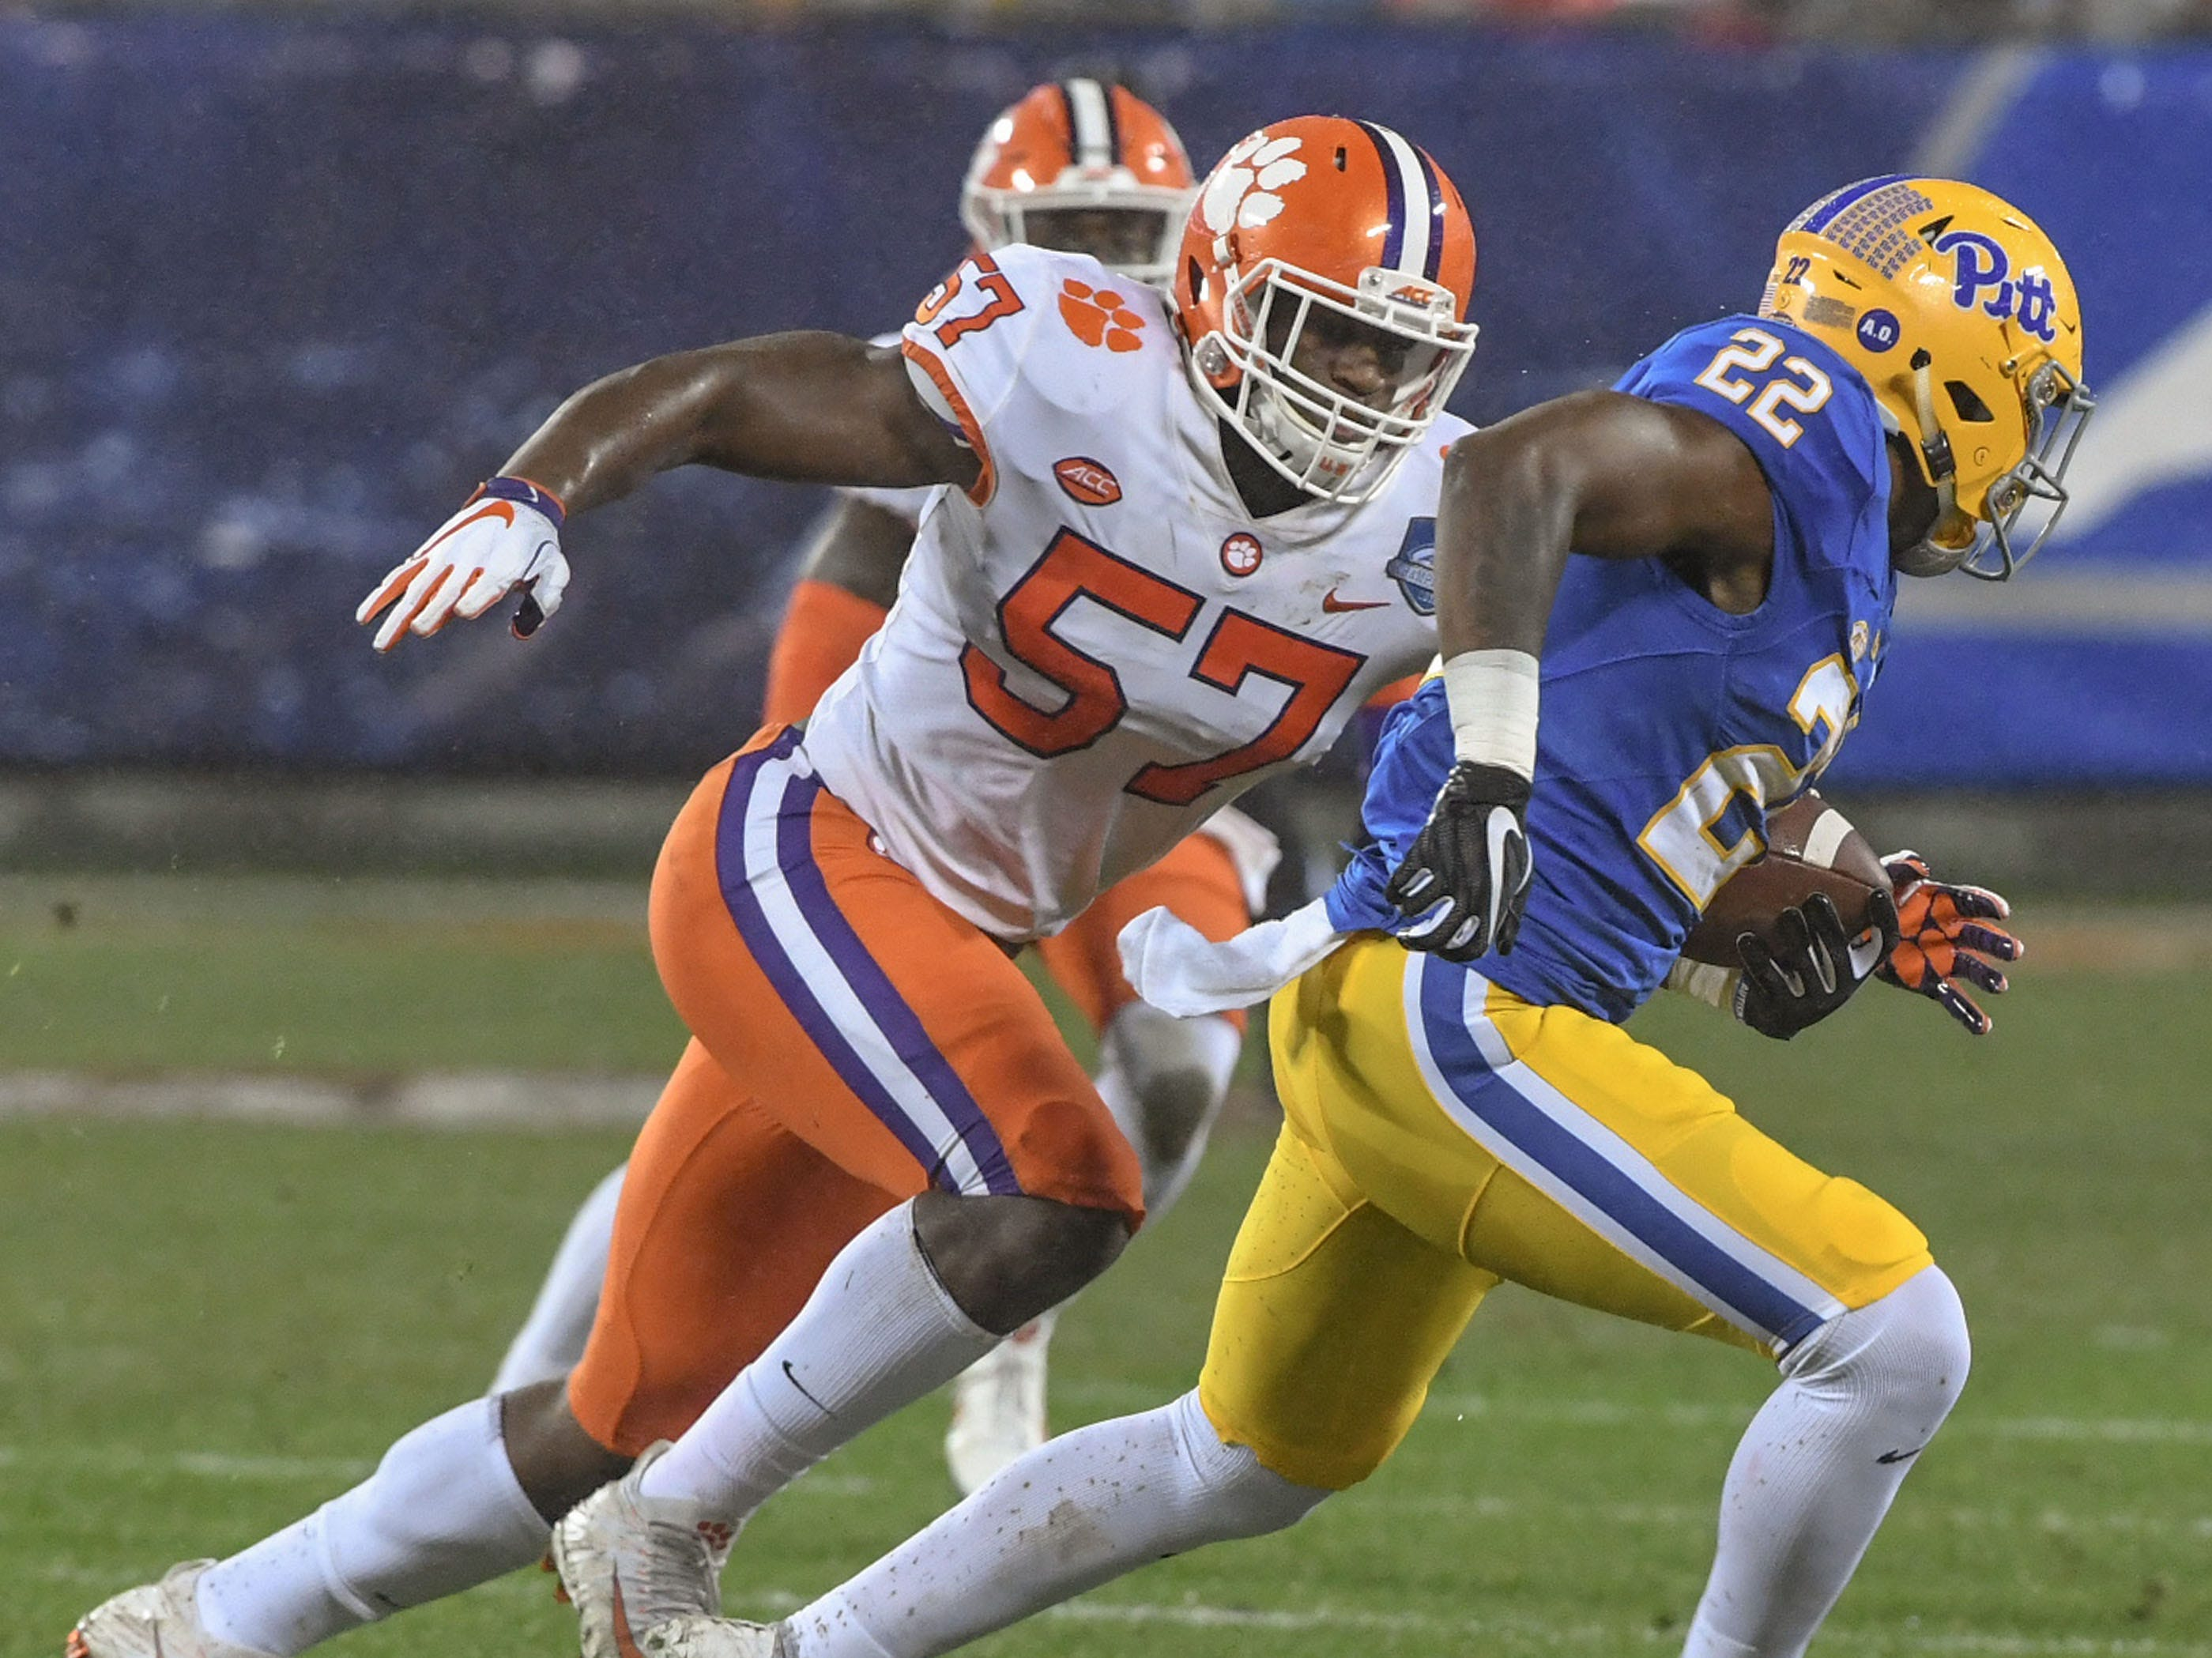 Clemson linebacker Tre Lamar (57) chases Pittsburgh running back Darrin Hall(22) during the third quarter of the Dr. Pepper ACC football championship at Bank of America Stadium in Charlotte, N.C. on Saturday, December 1, 2018.